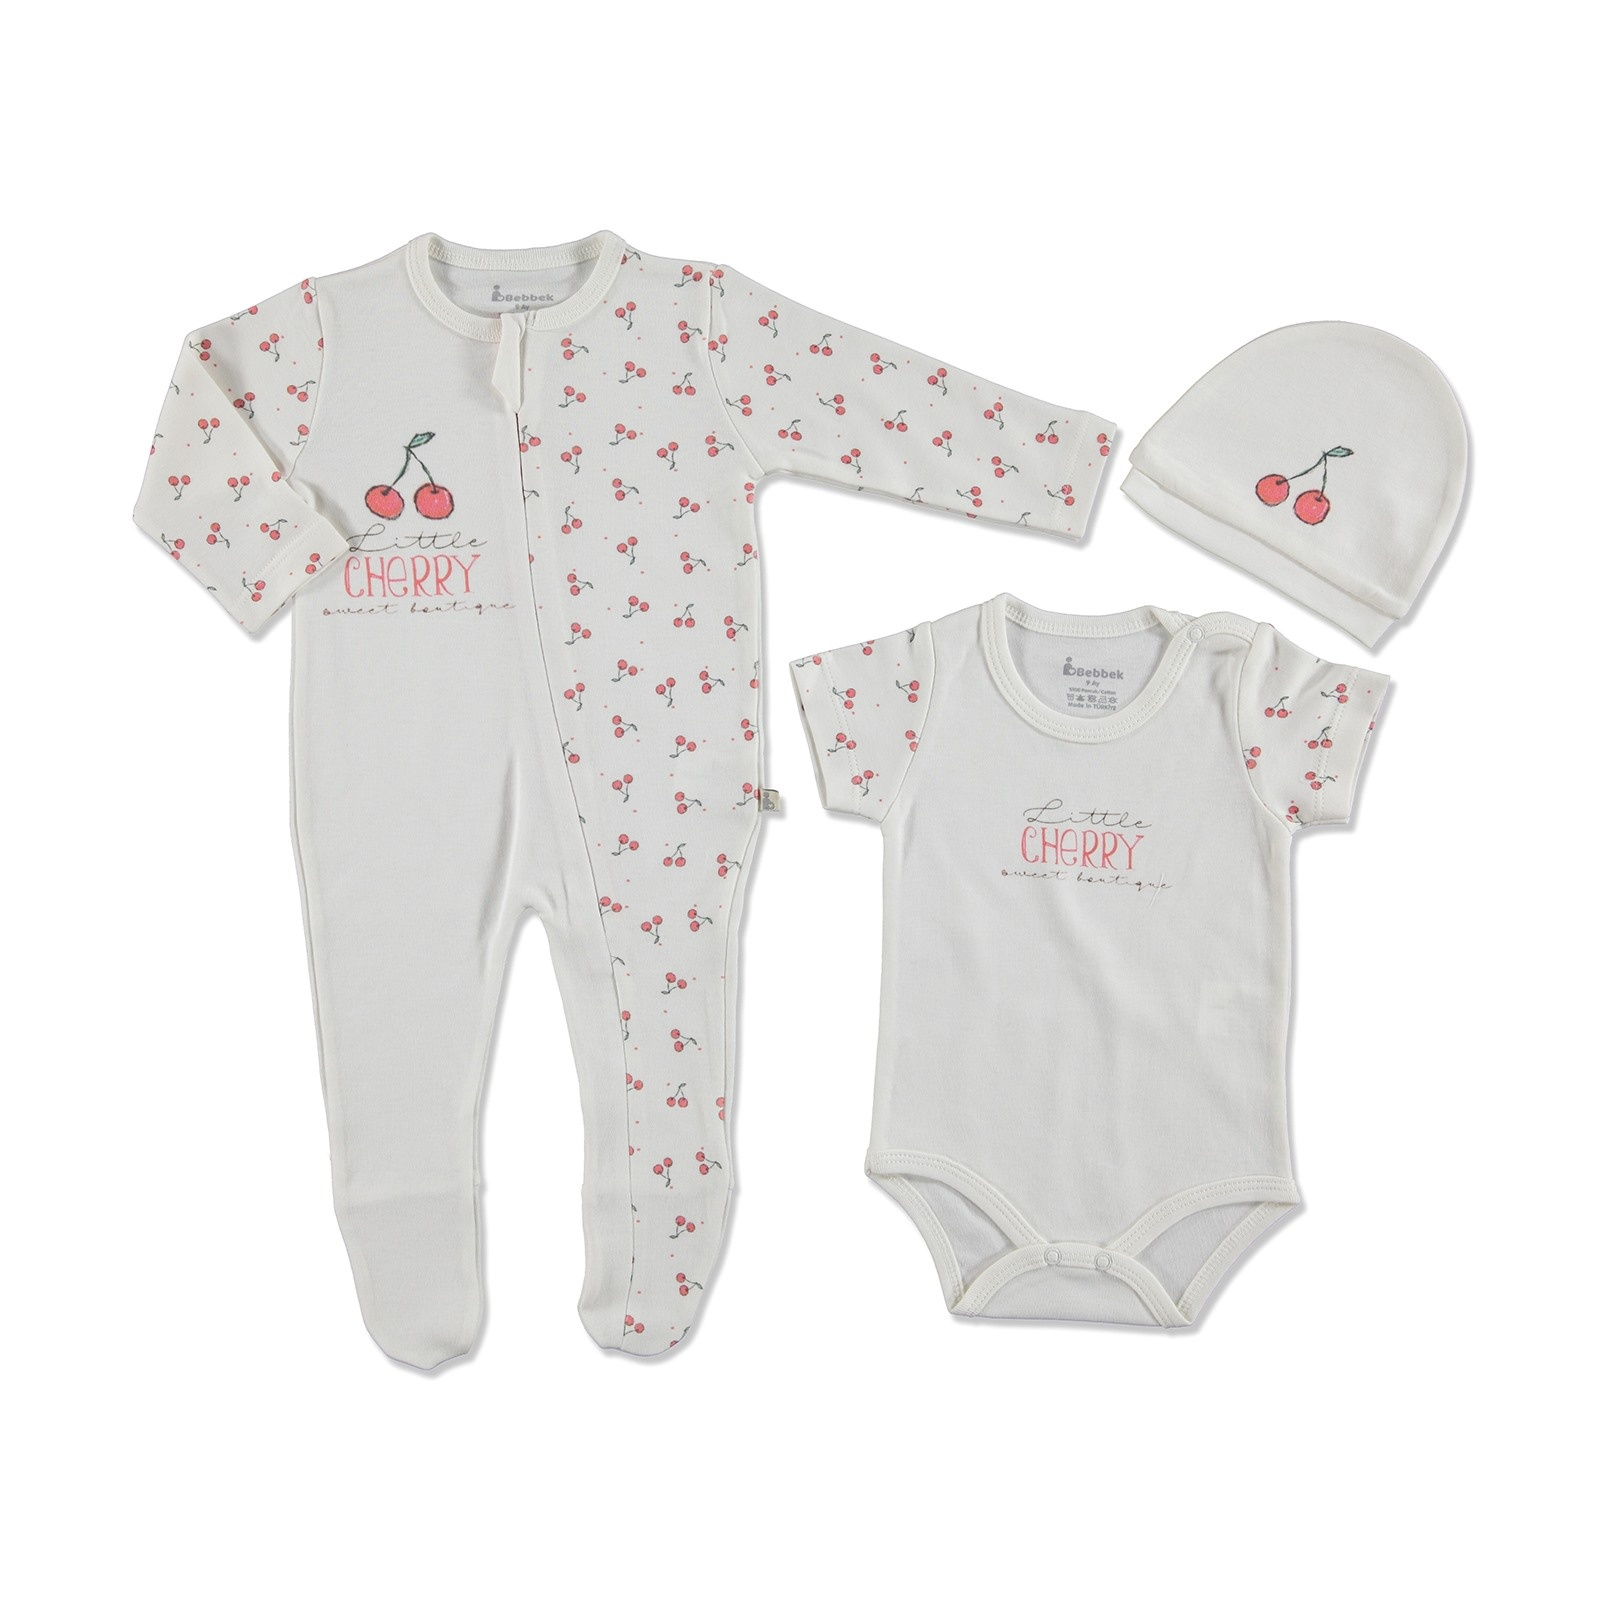 Ebebek Bebbek Summer Baby Girl Cherry Romper Bodysuit Hat 3 Pcs Set